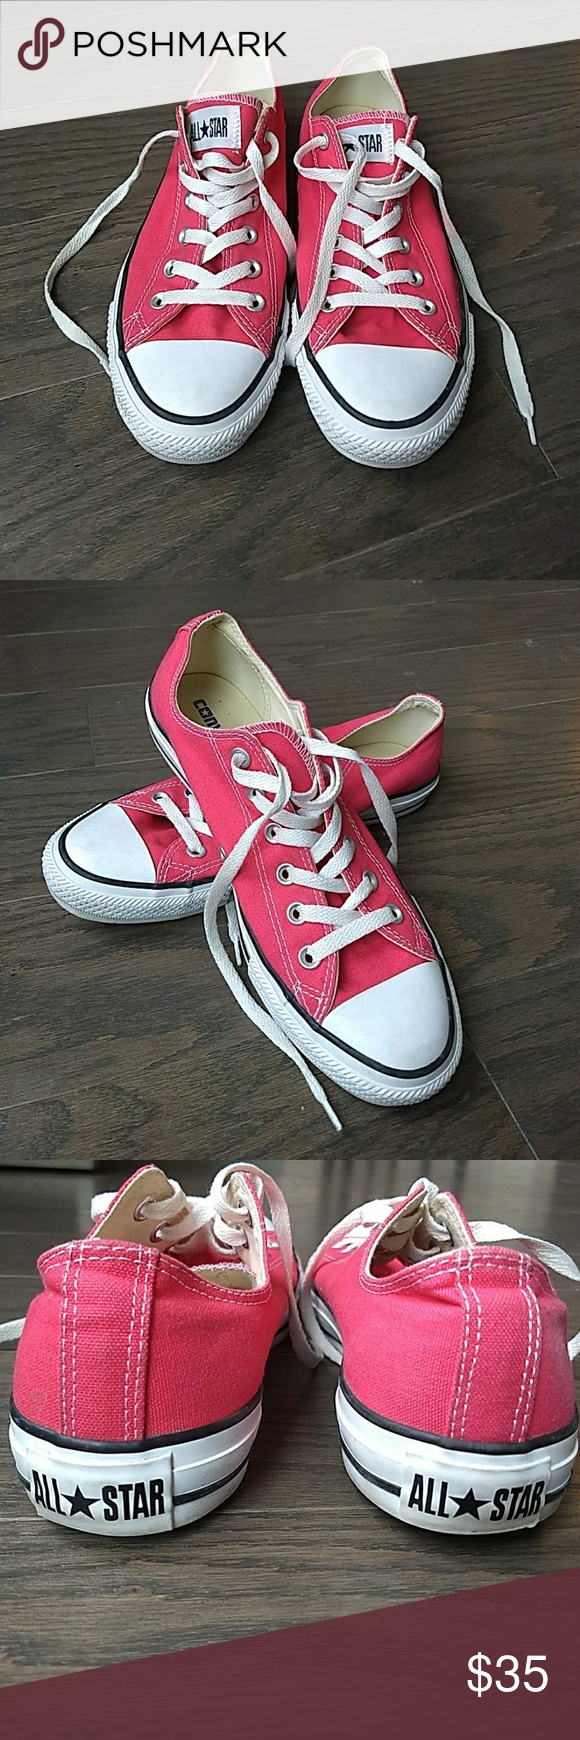 ca6e00005bb8 Hot Pink Converse All Star Size 10 These are in great used condition. Women s  size 10 or Men s size 8 Converse Shoes